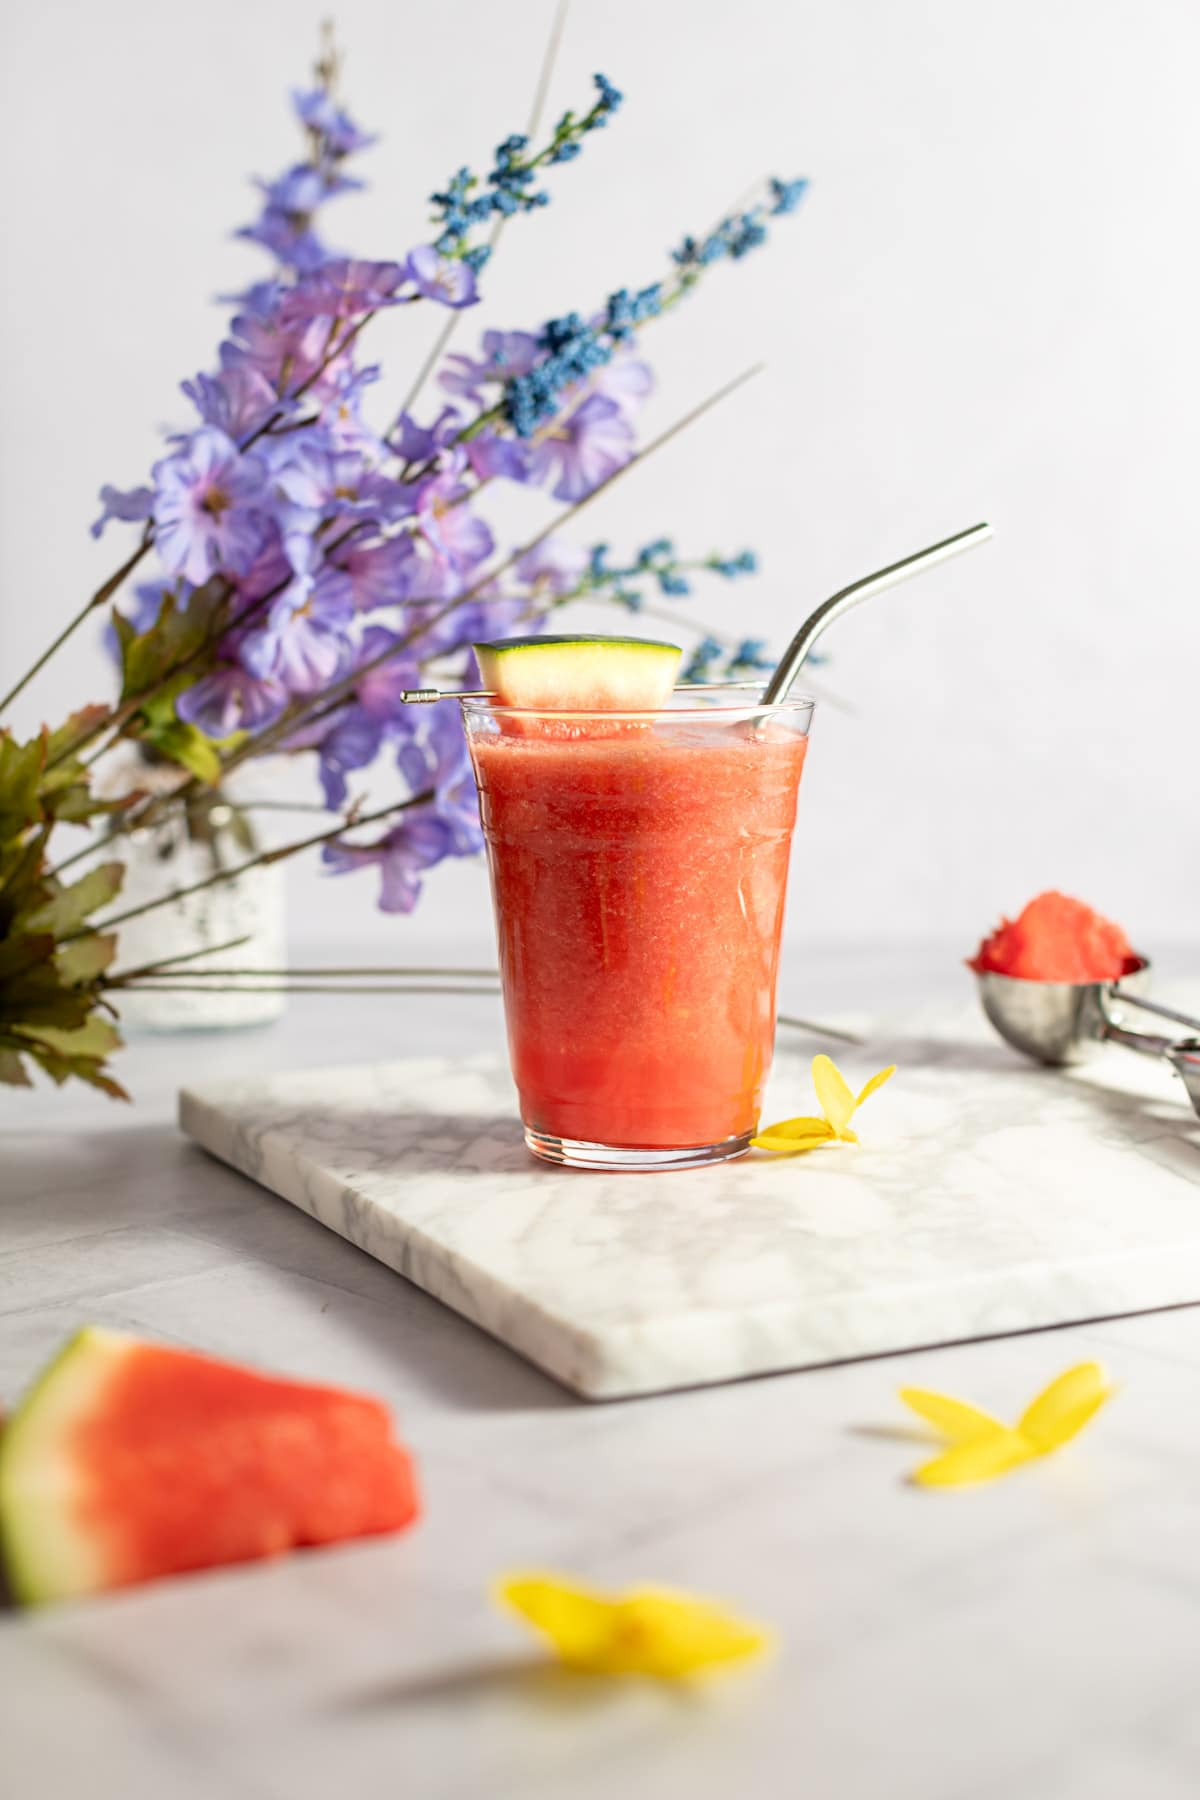 A watermelon pineapple smoothie, garnished with a slice of watermelon, on a grey marble board, with purple flowers in the background.